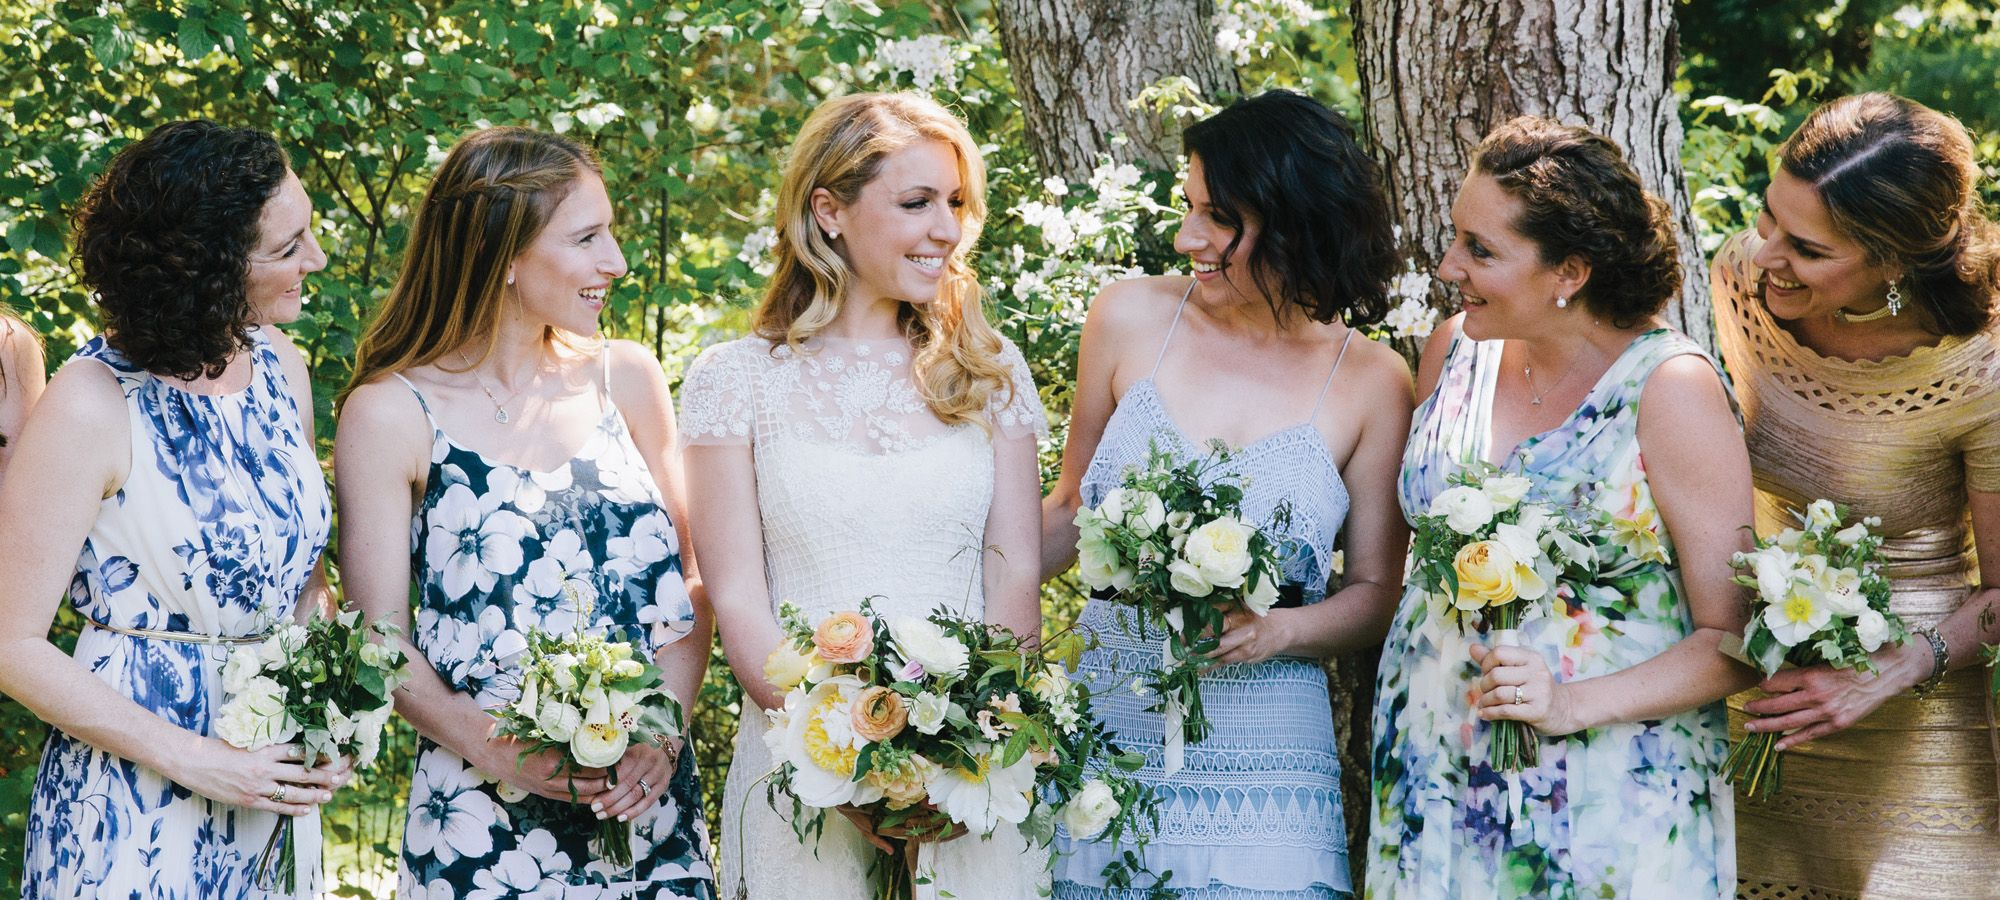 Emily niko blue and white floral bridesmaid dresses island emily niko blue and white floral bridesmaid dresses island weddings ombrellifo Image collections